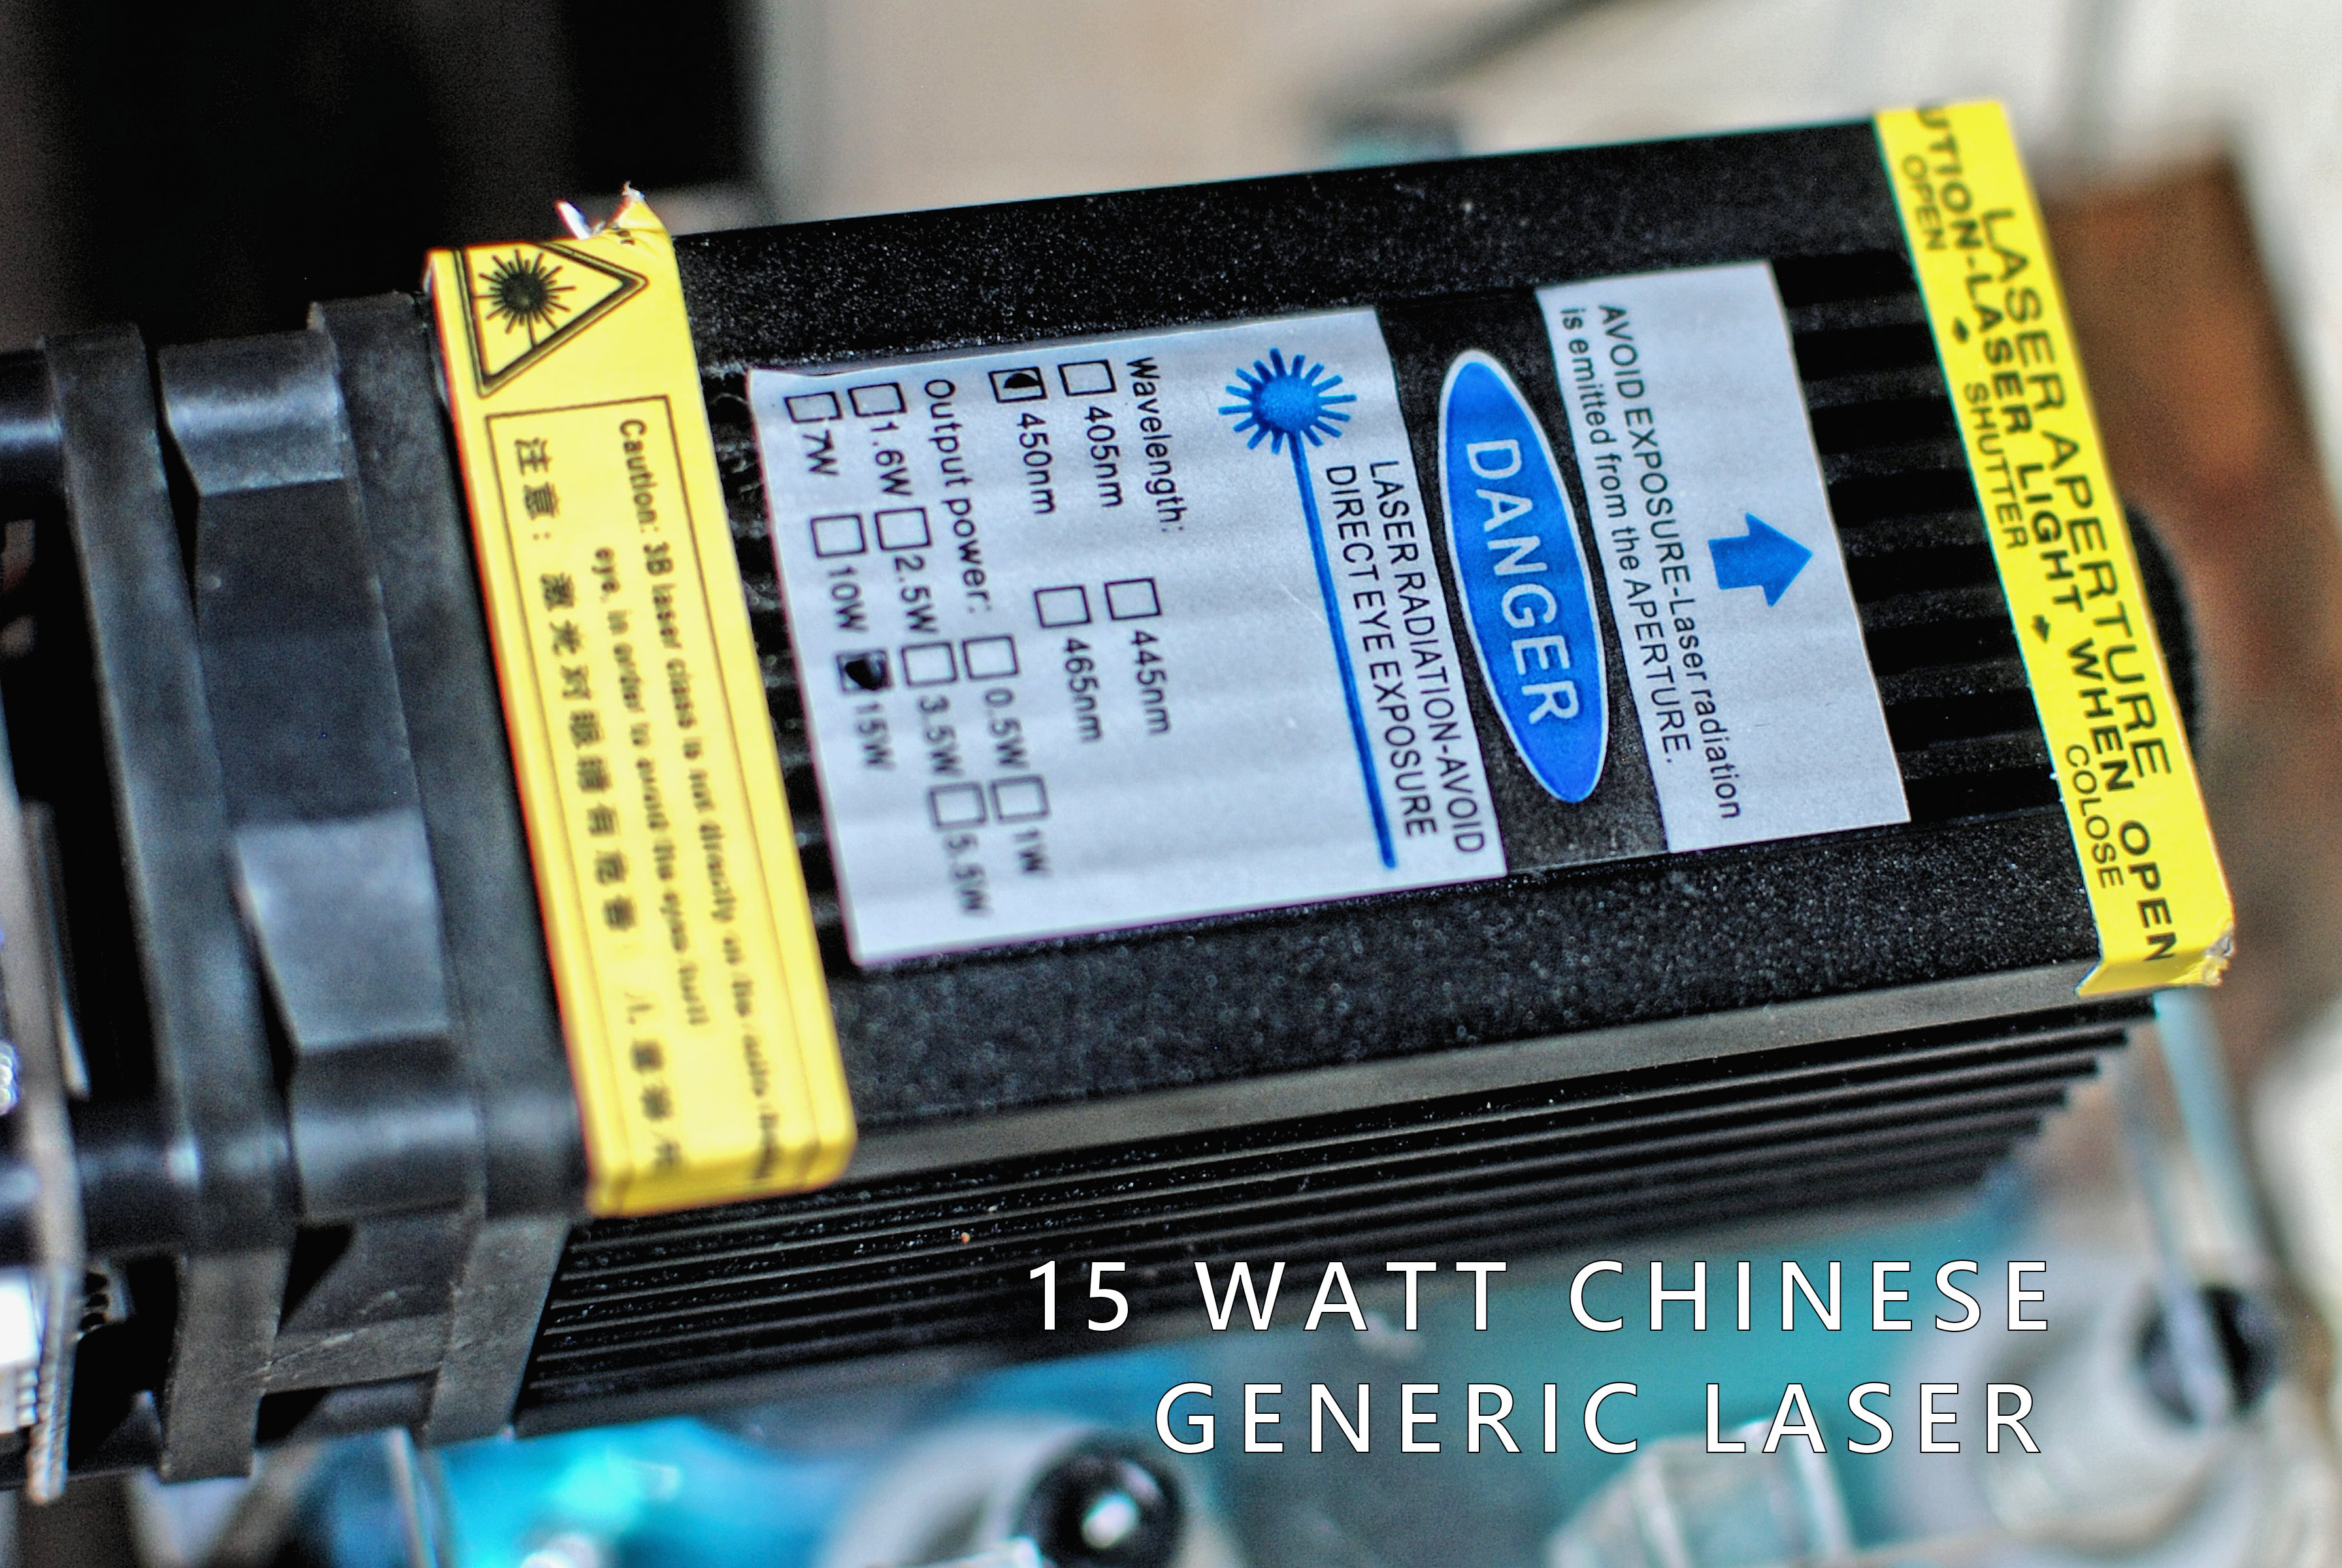 Generic Chinese Lasers (what NOT to do)